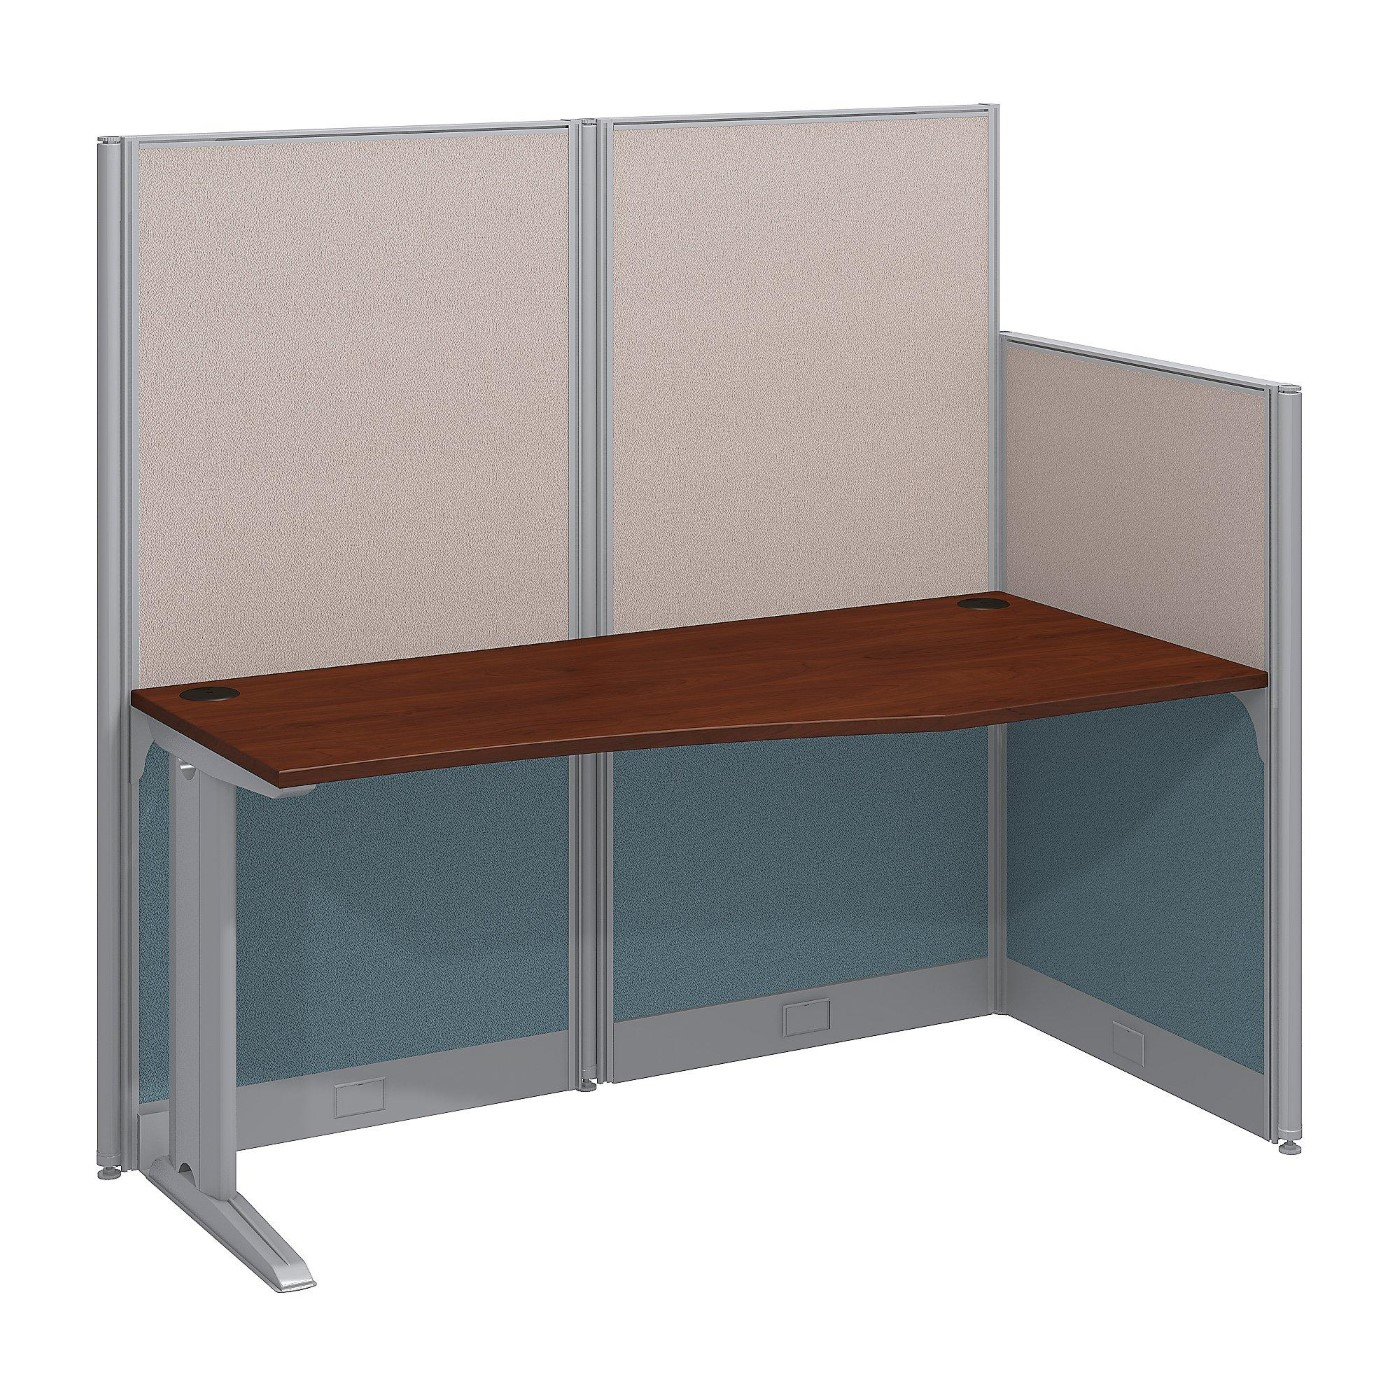 <font color=#c60><b>BUSH BUSINESS FURNITURE OFFICE IN AN HOUR 65W X 33D CUBICLE WORKSTATION. FREE SHIPPING</font></b></font></b>